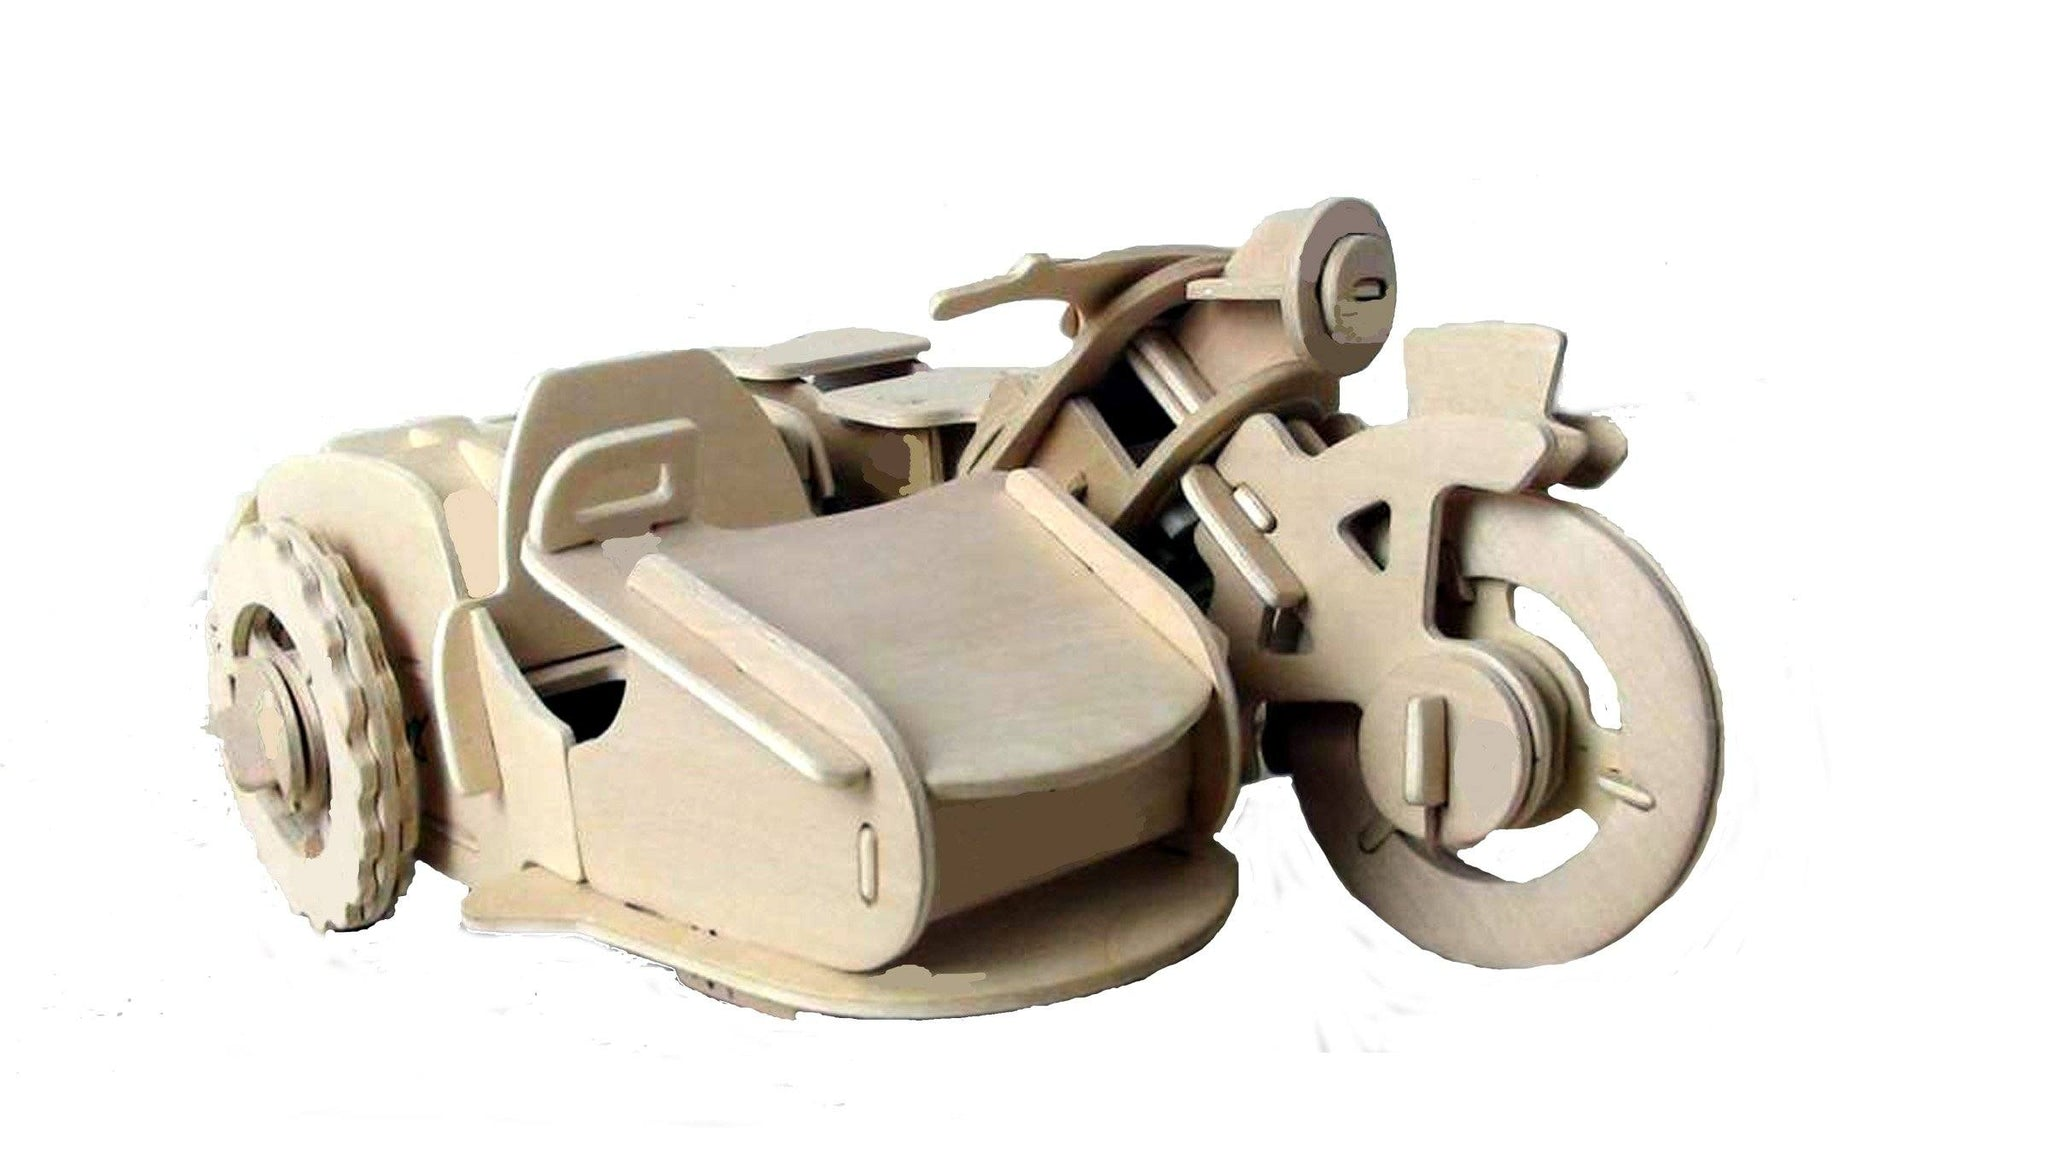 --Robotic 3D Wooden Puzzle-Motorcycle w/Sidecar--